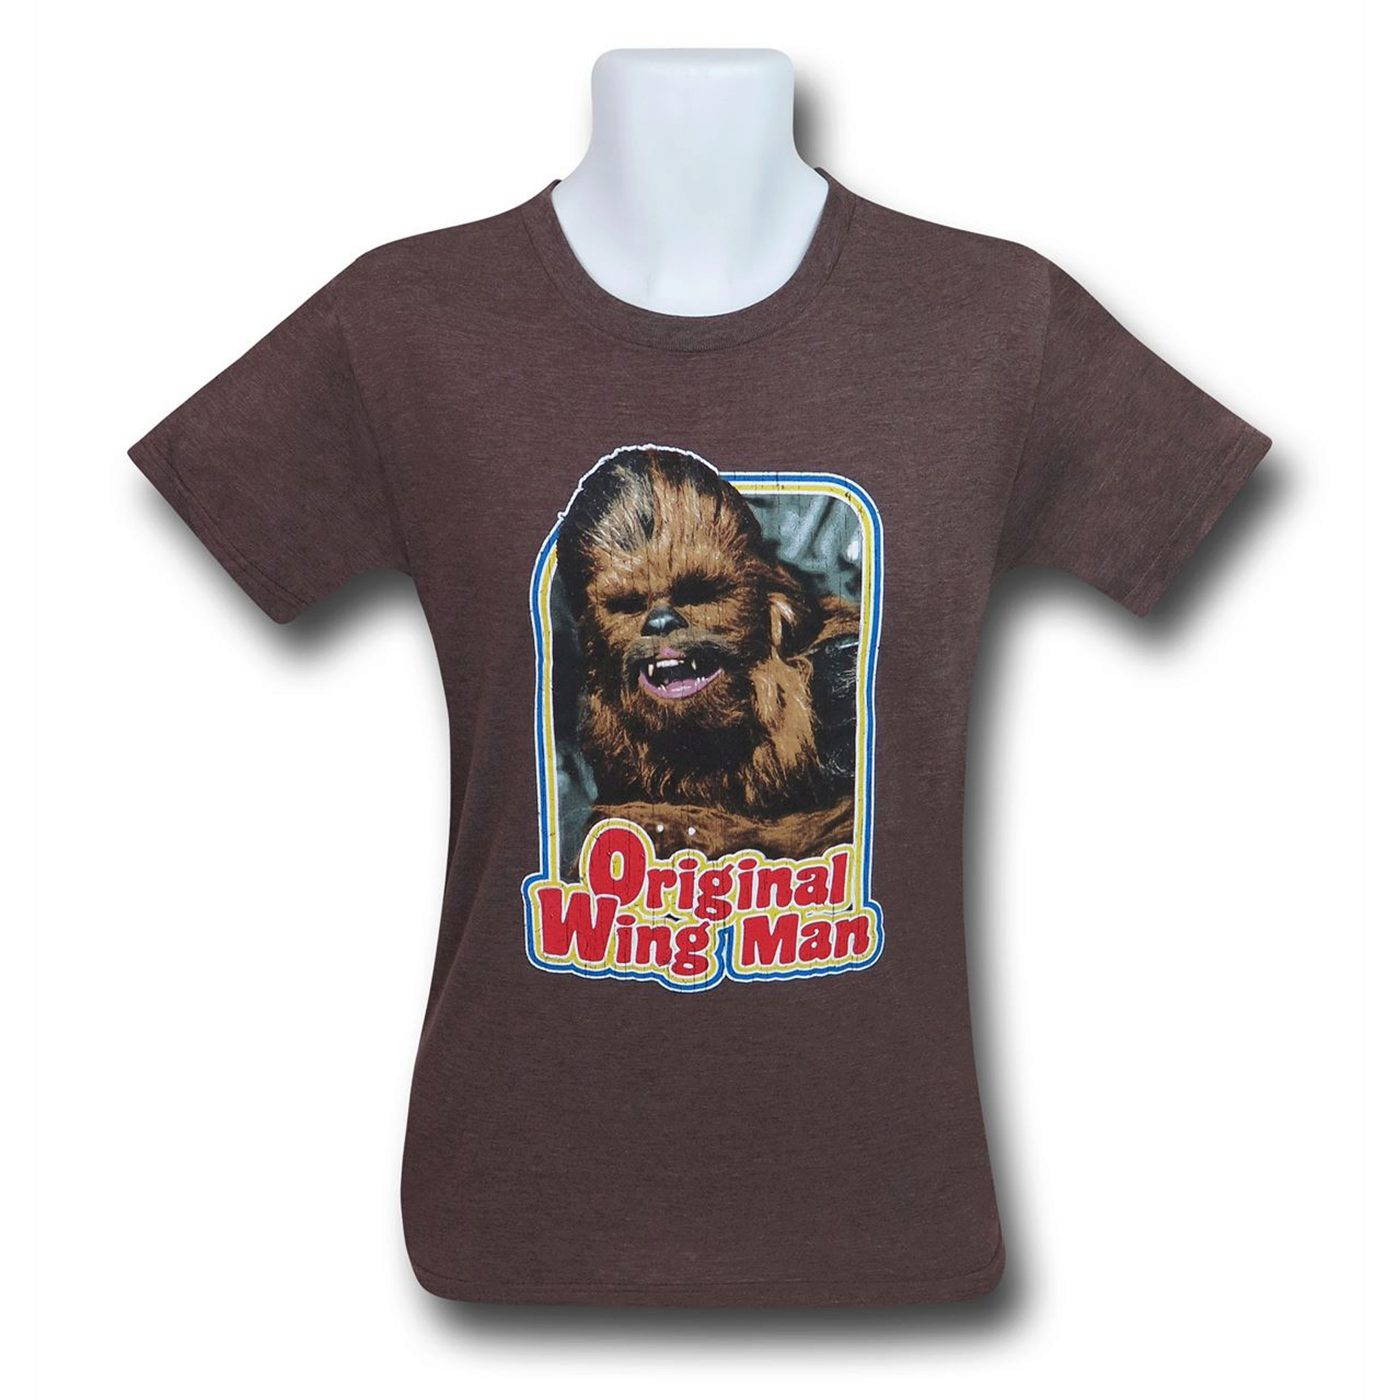 Star Wars Chewie Original Wing Man Men's T-Shirt